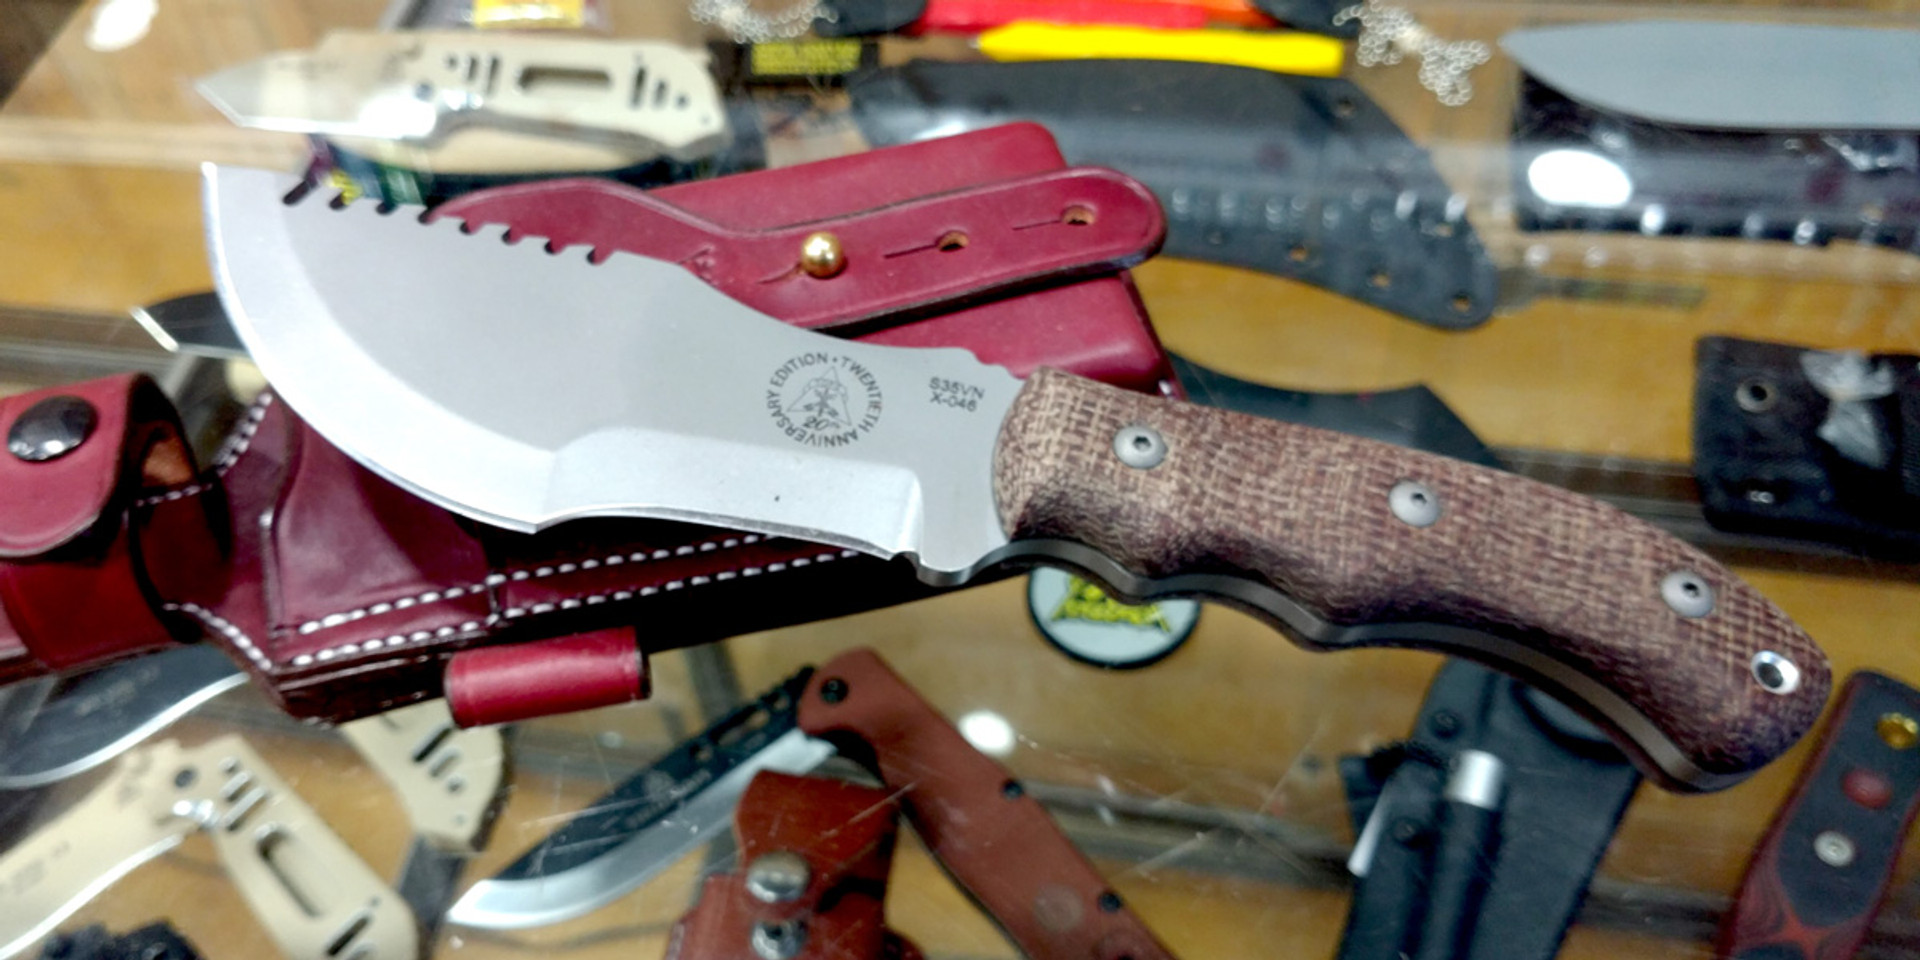 We're a TOPS Knives Authorized Retailer